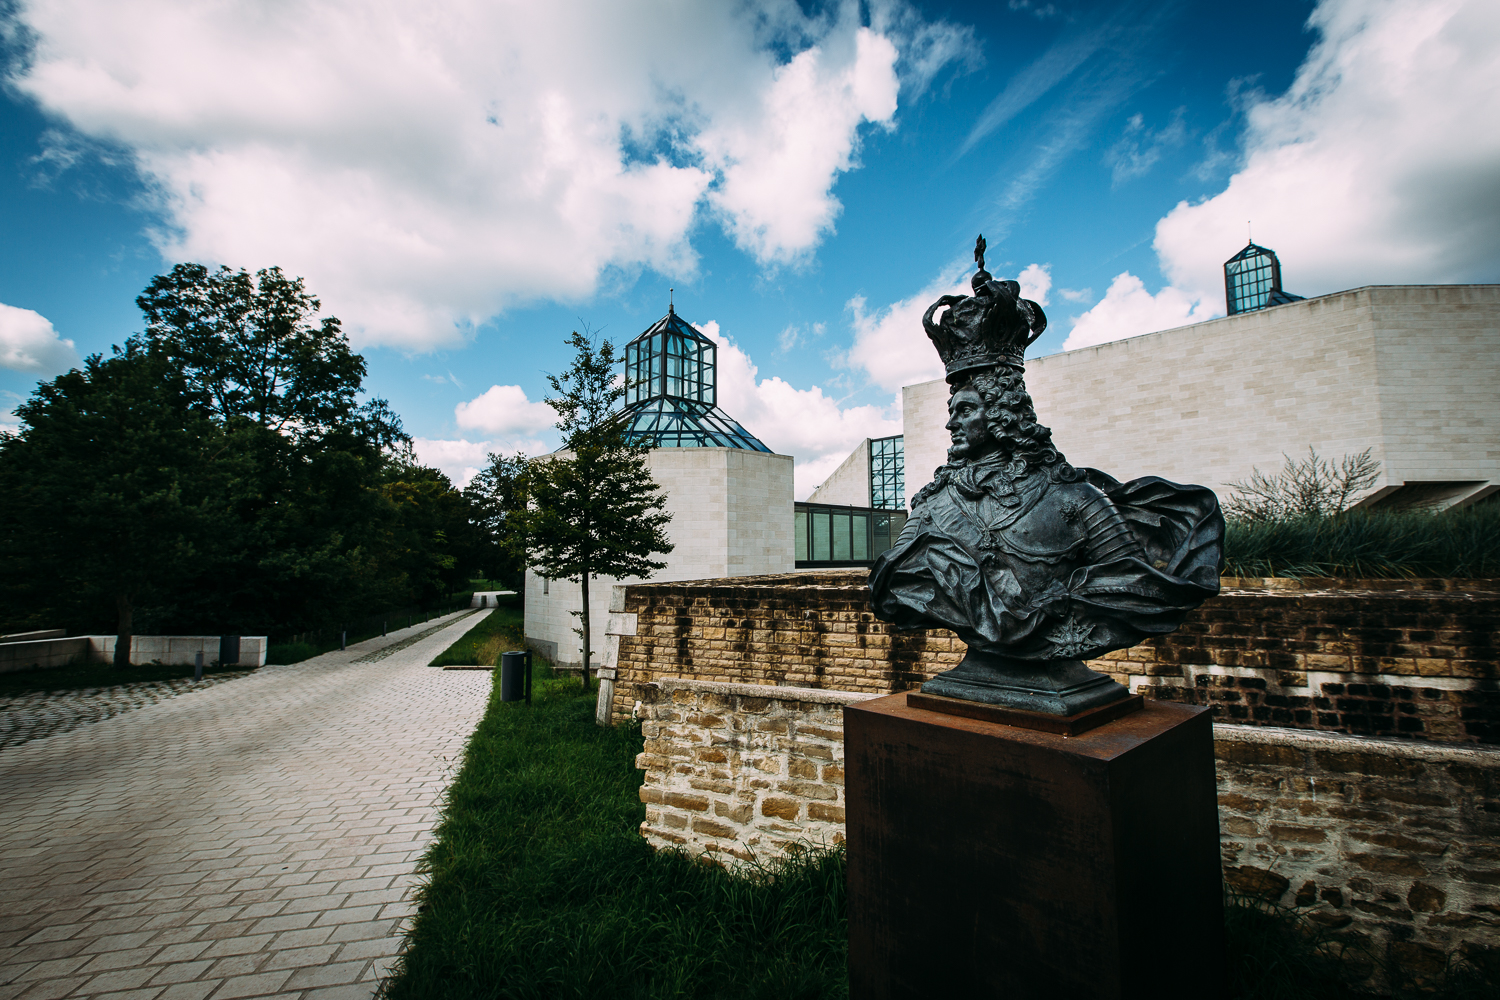 20140819 - Location Scouting-64.jpg